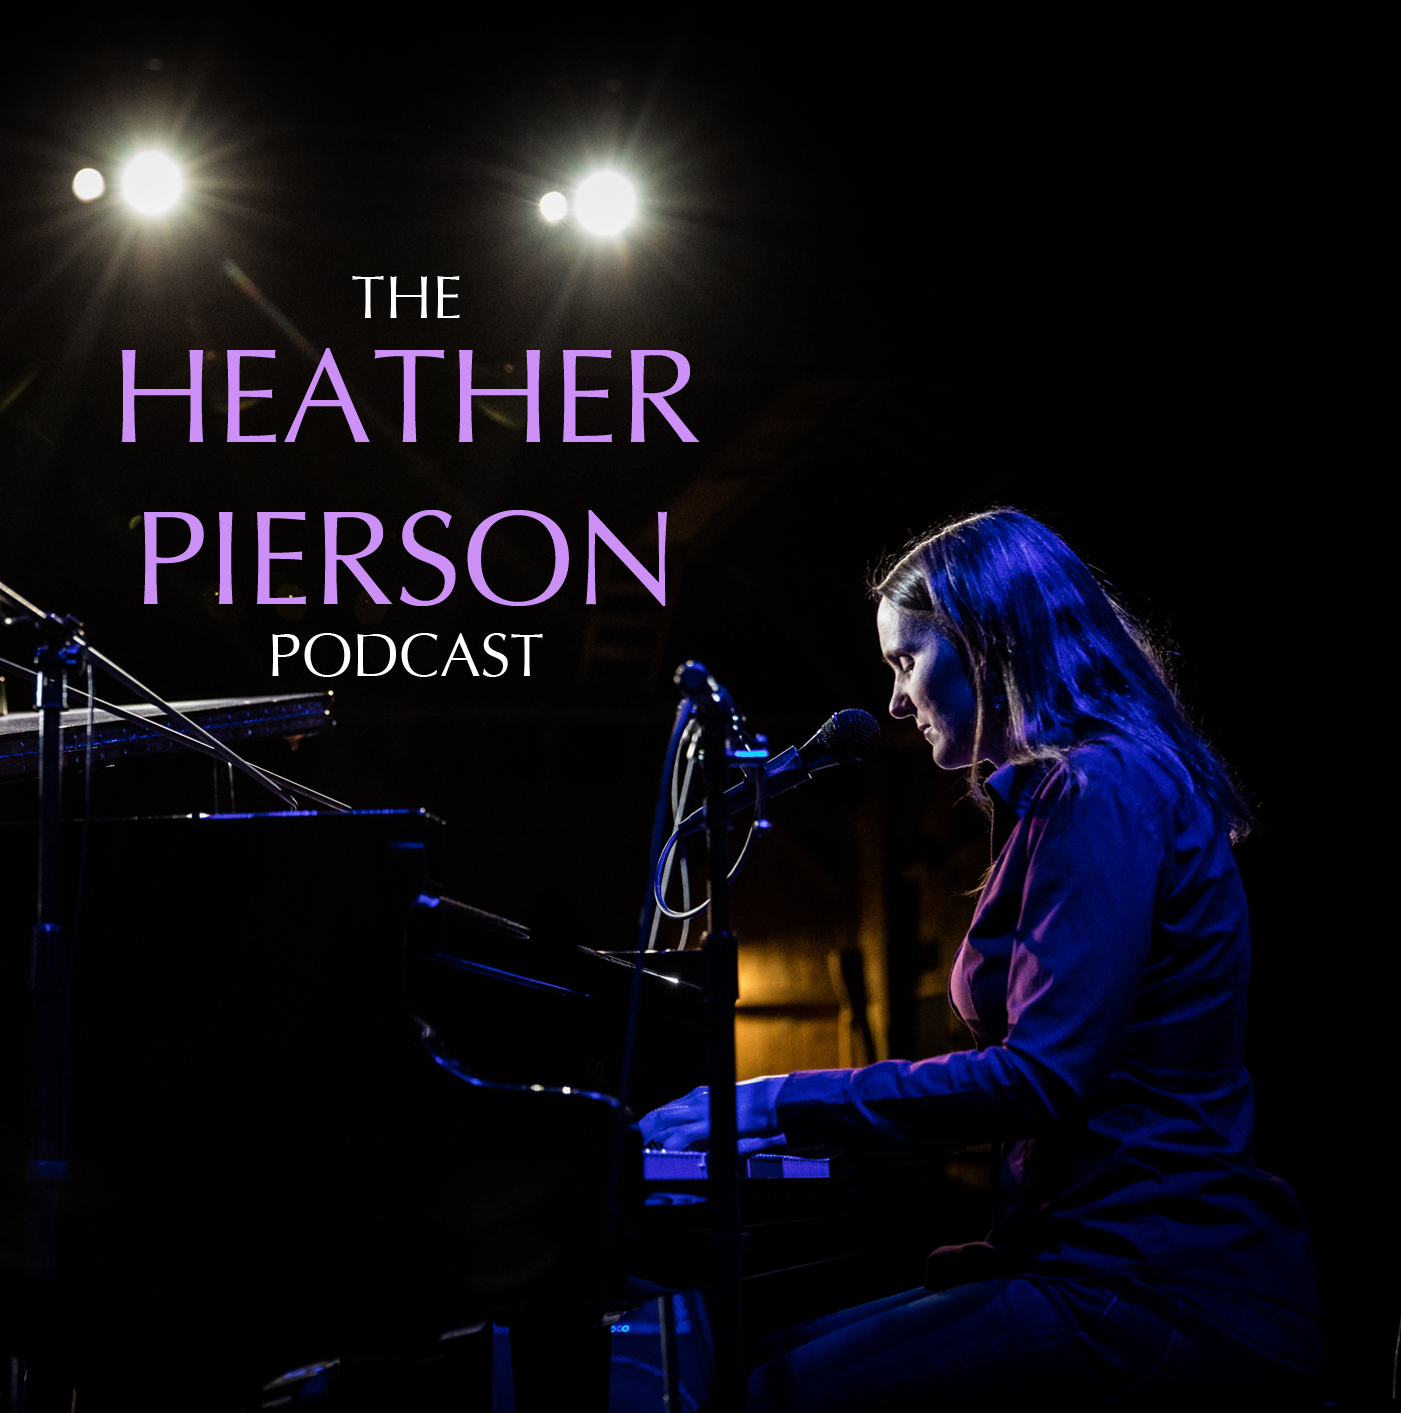 The Heather Pierson Podcast show art